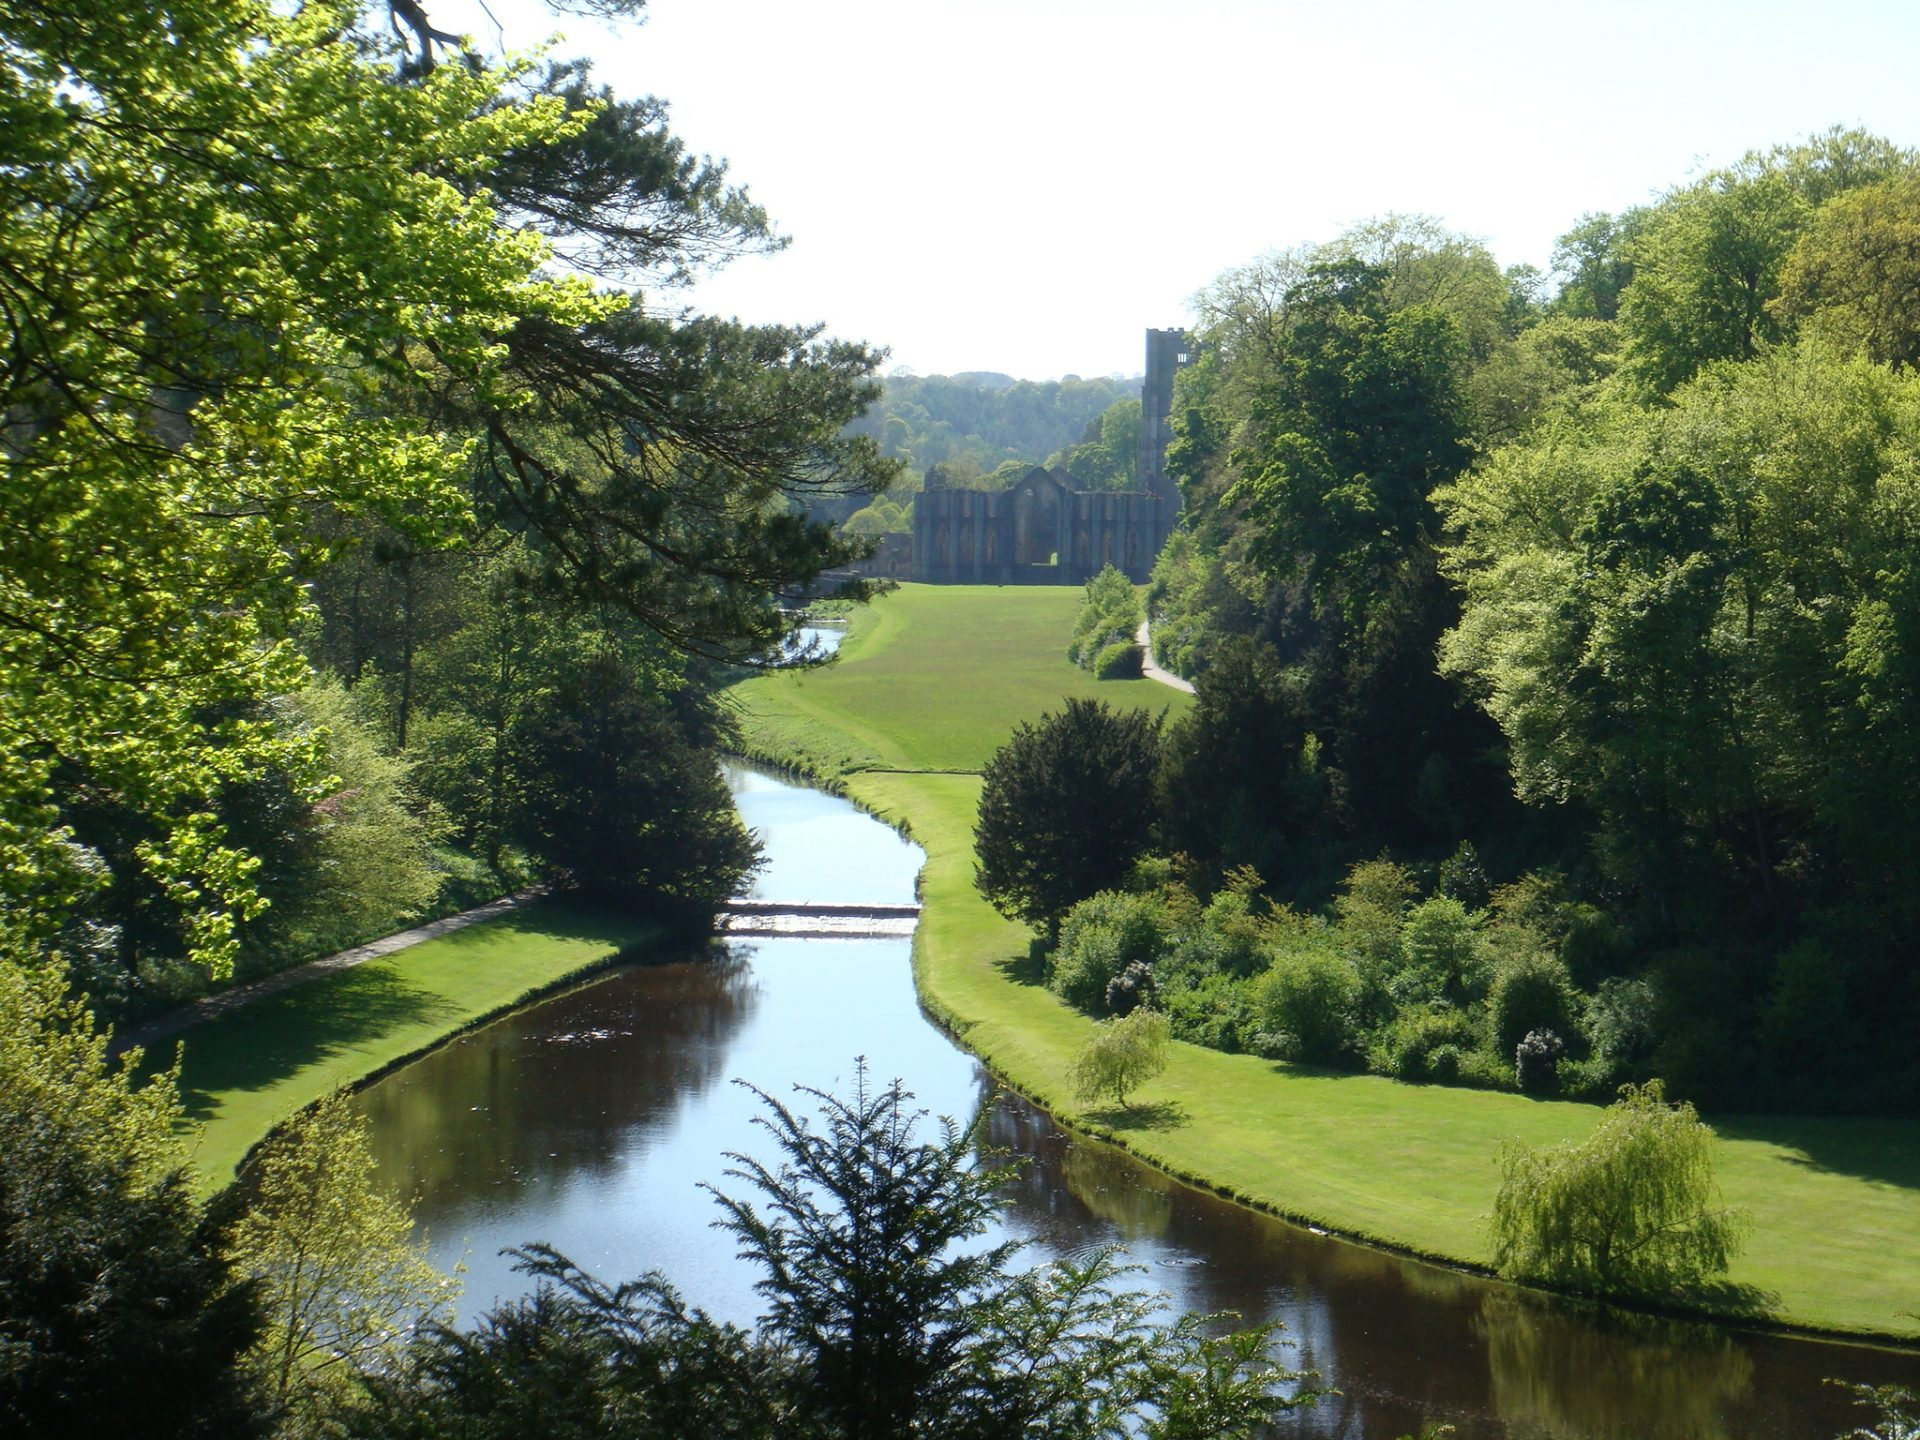 The water gardens at Fountains Abbey